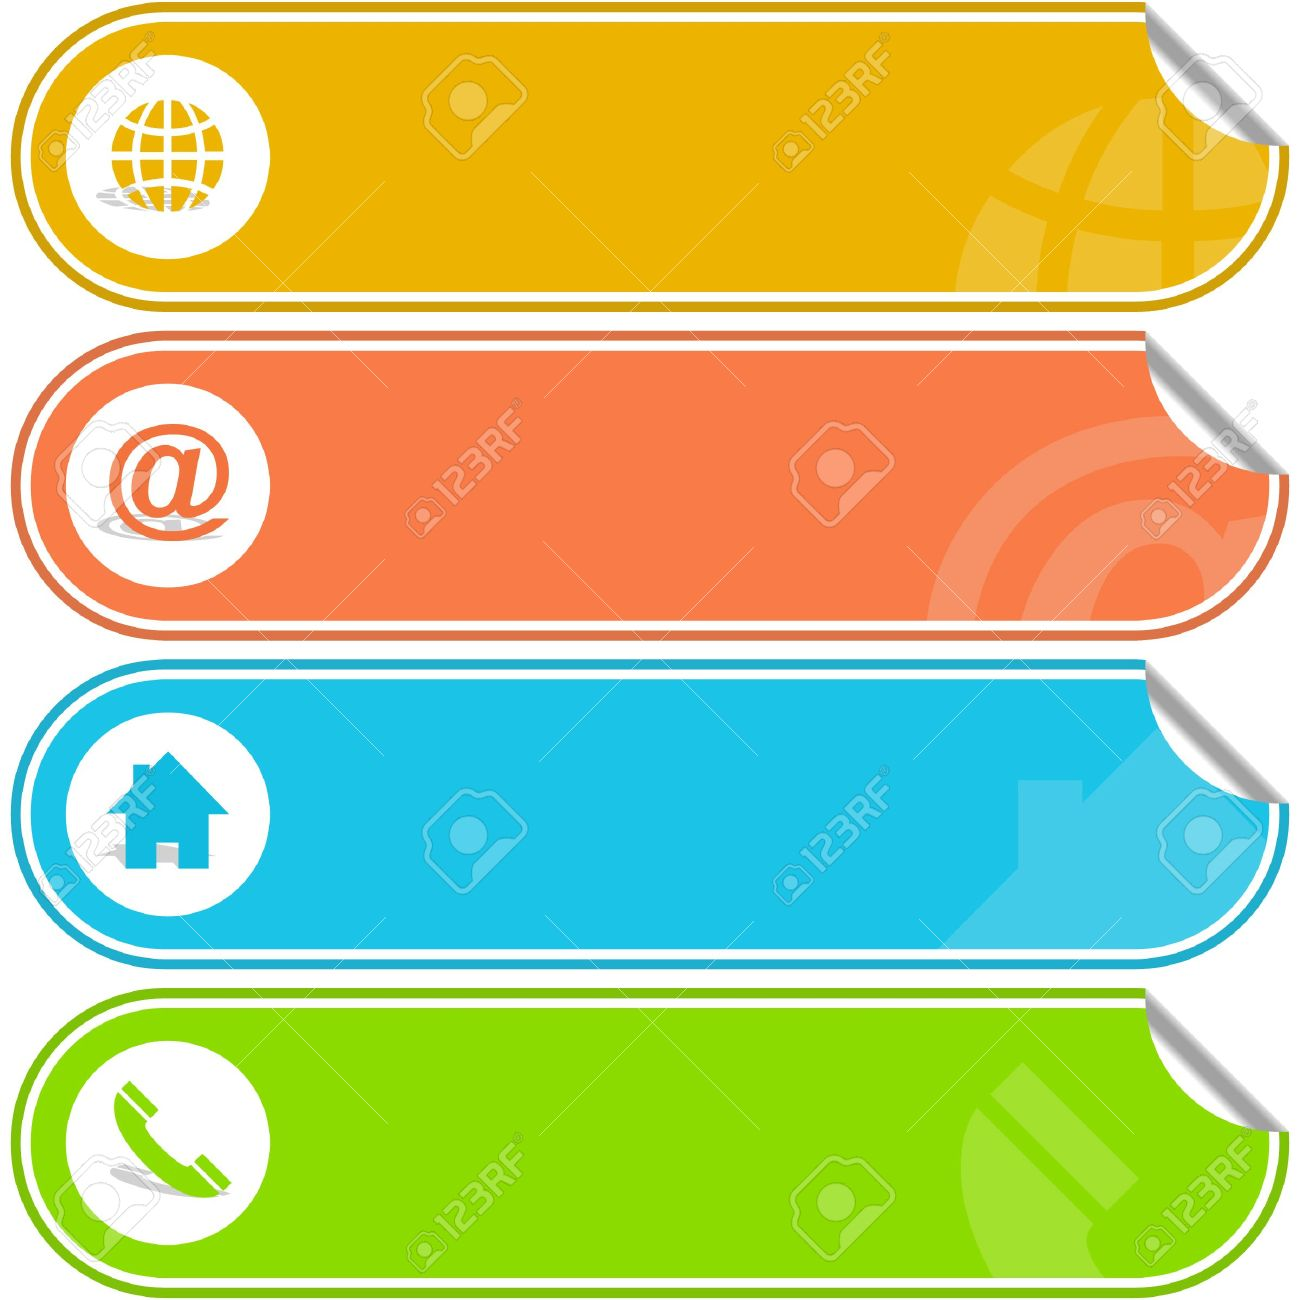 Contact elements for design. Stock Vector - 6549319